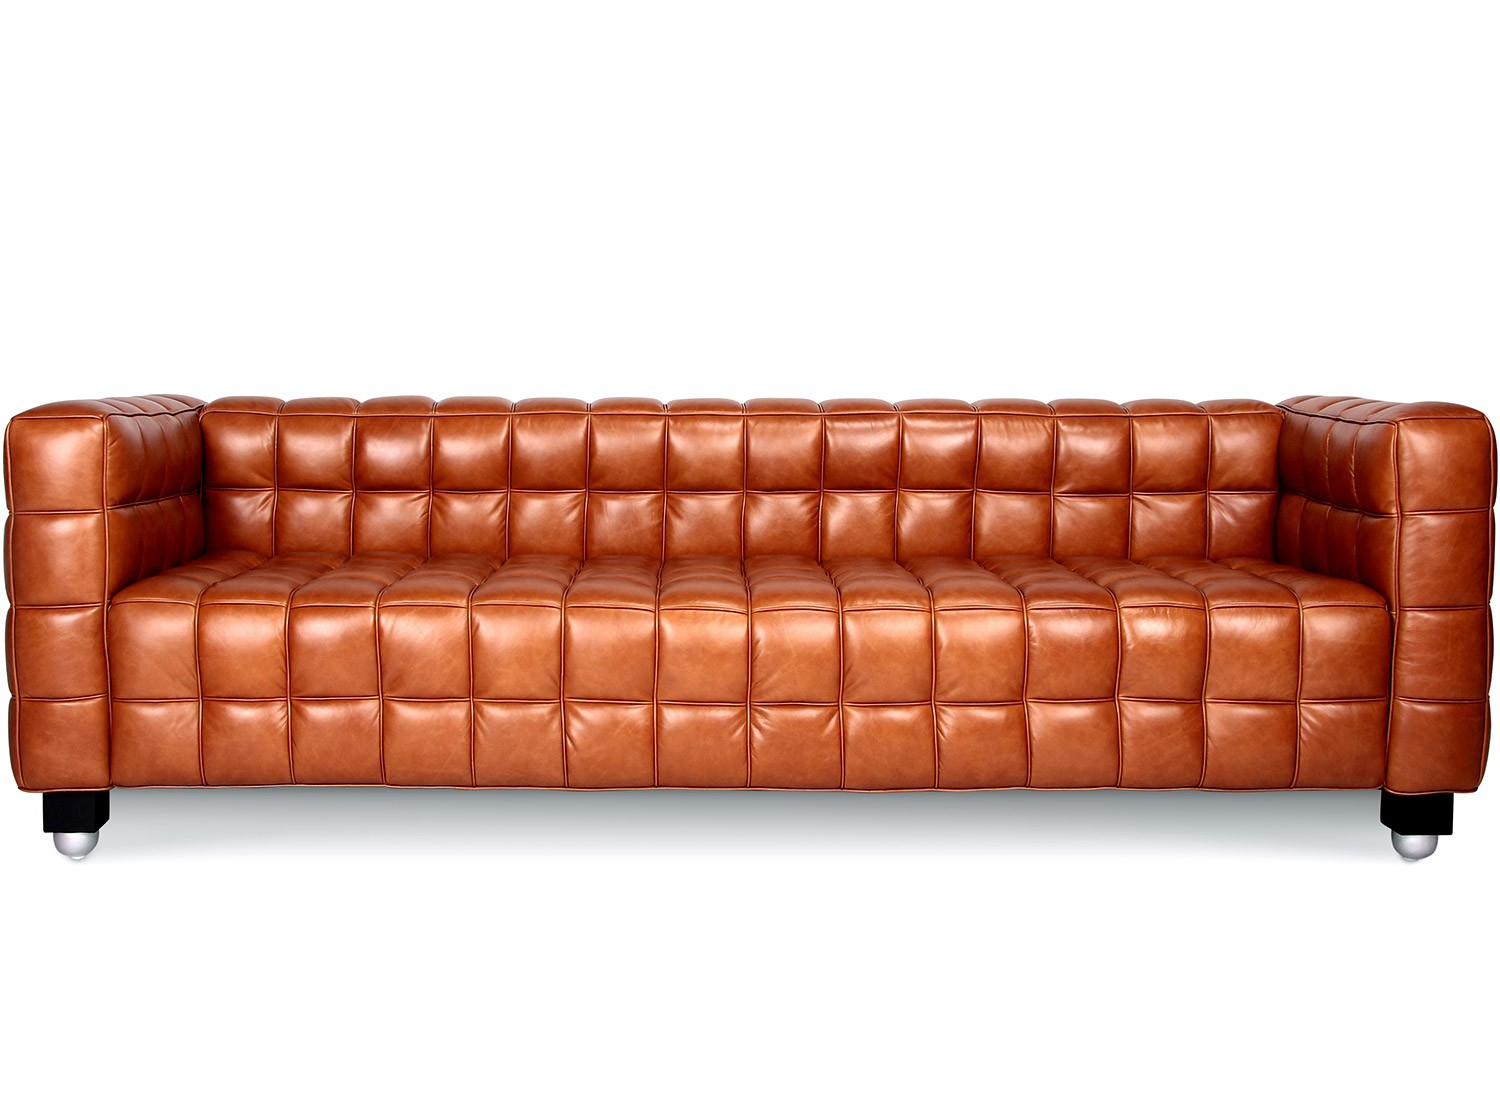 Kubus Sofa photo - 1